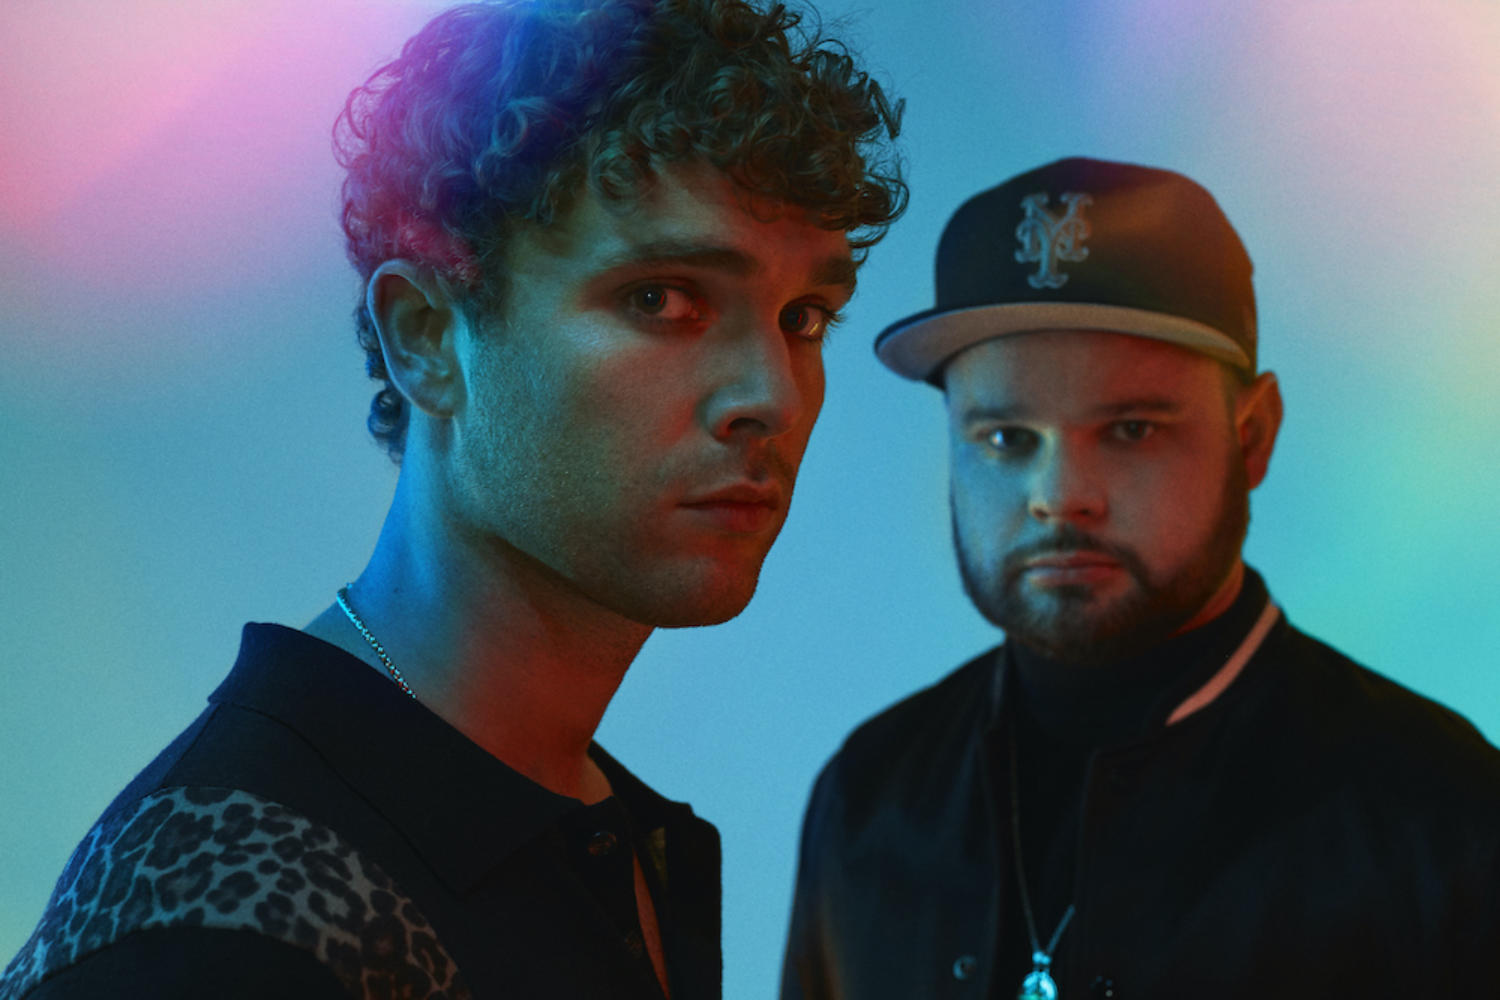 Royal Blood unleash 'Trouble's Coming' video